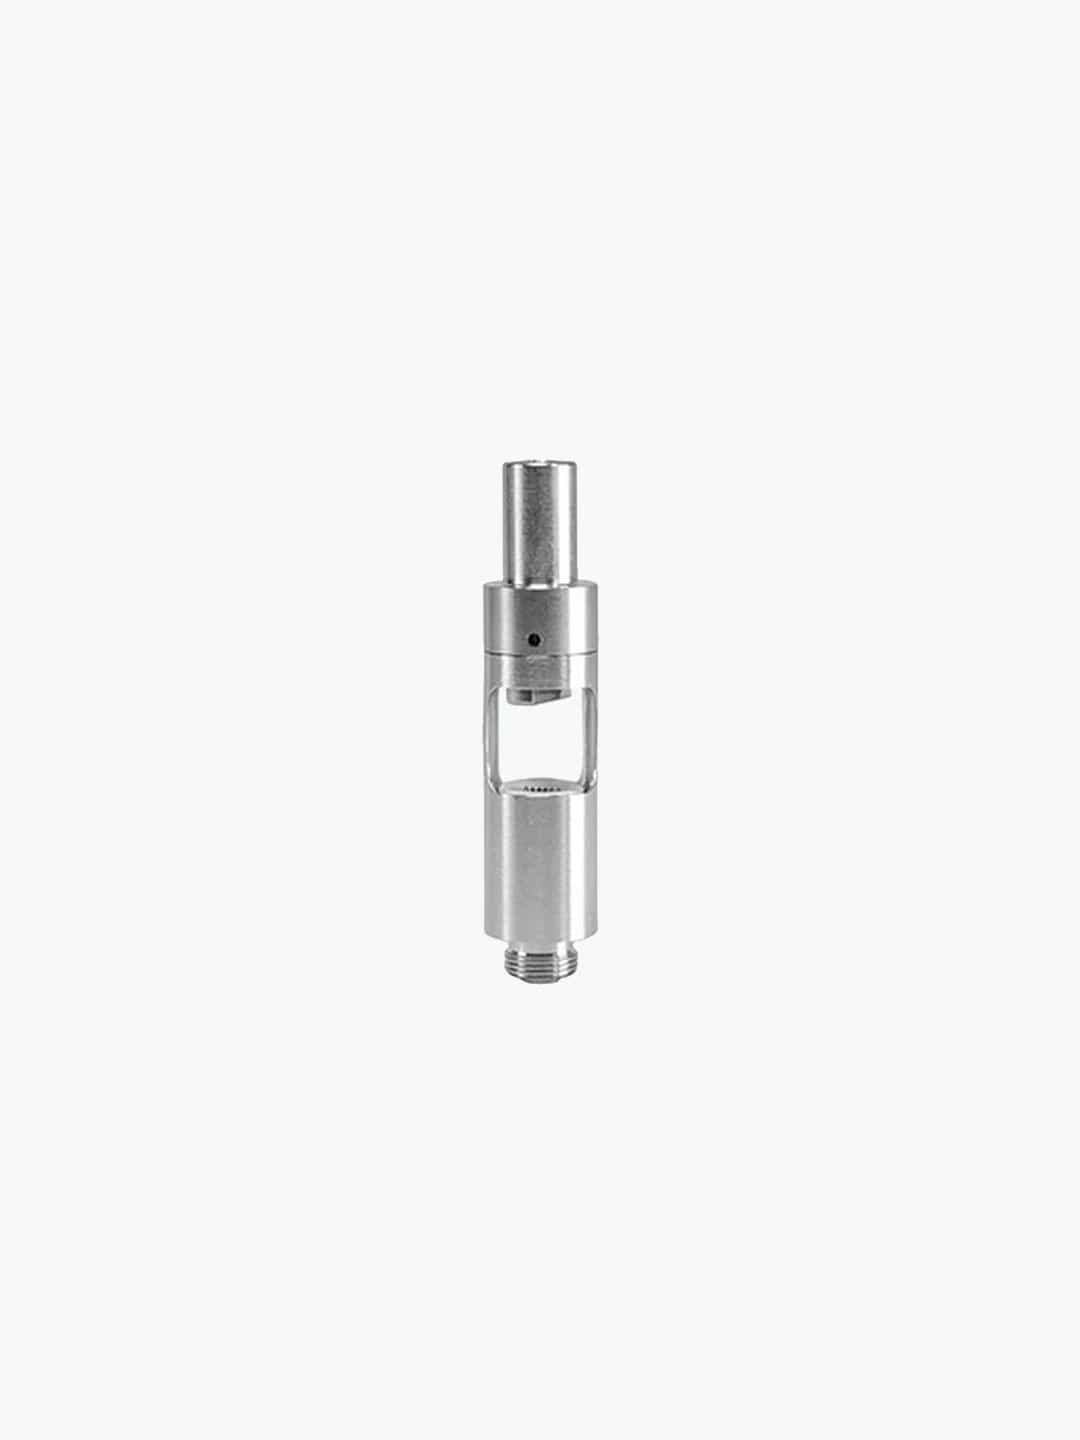 The Ember Replacement Atomizer